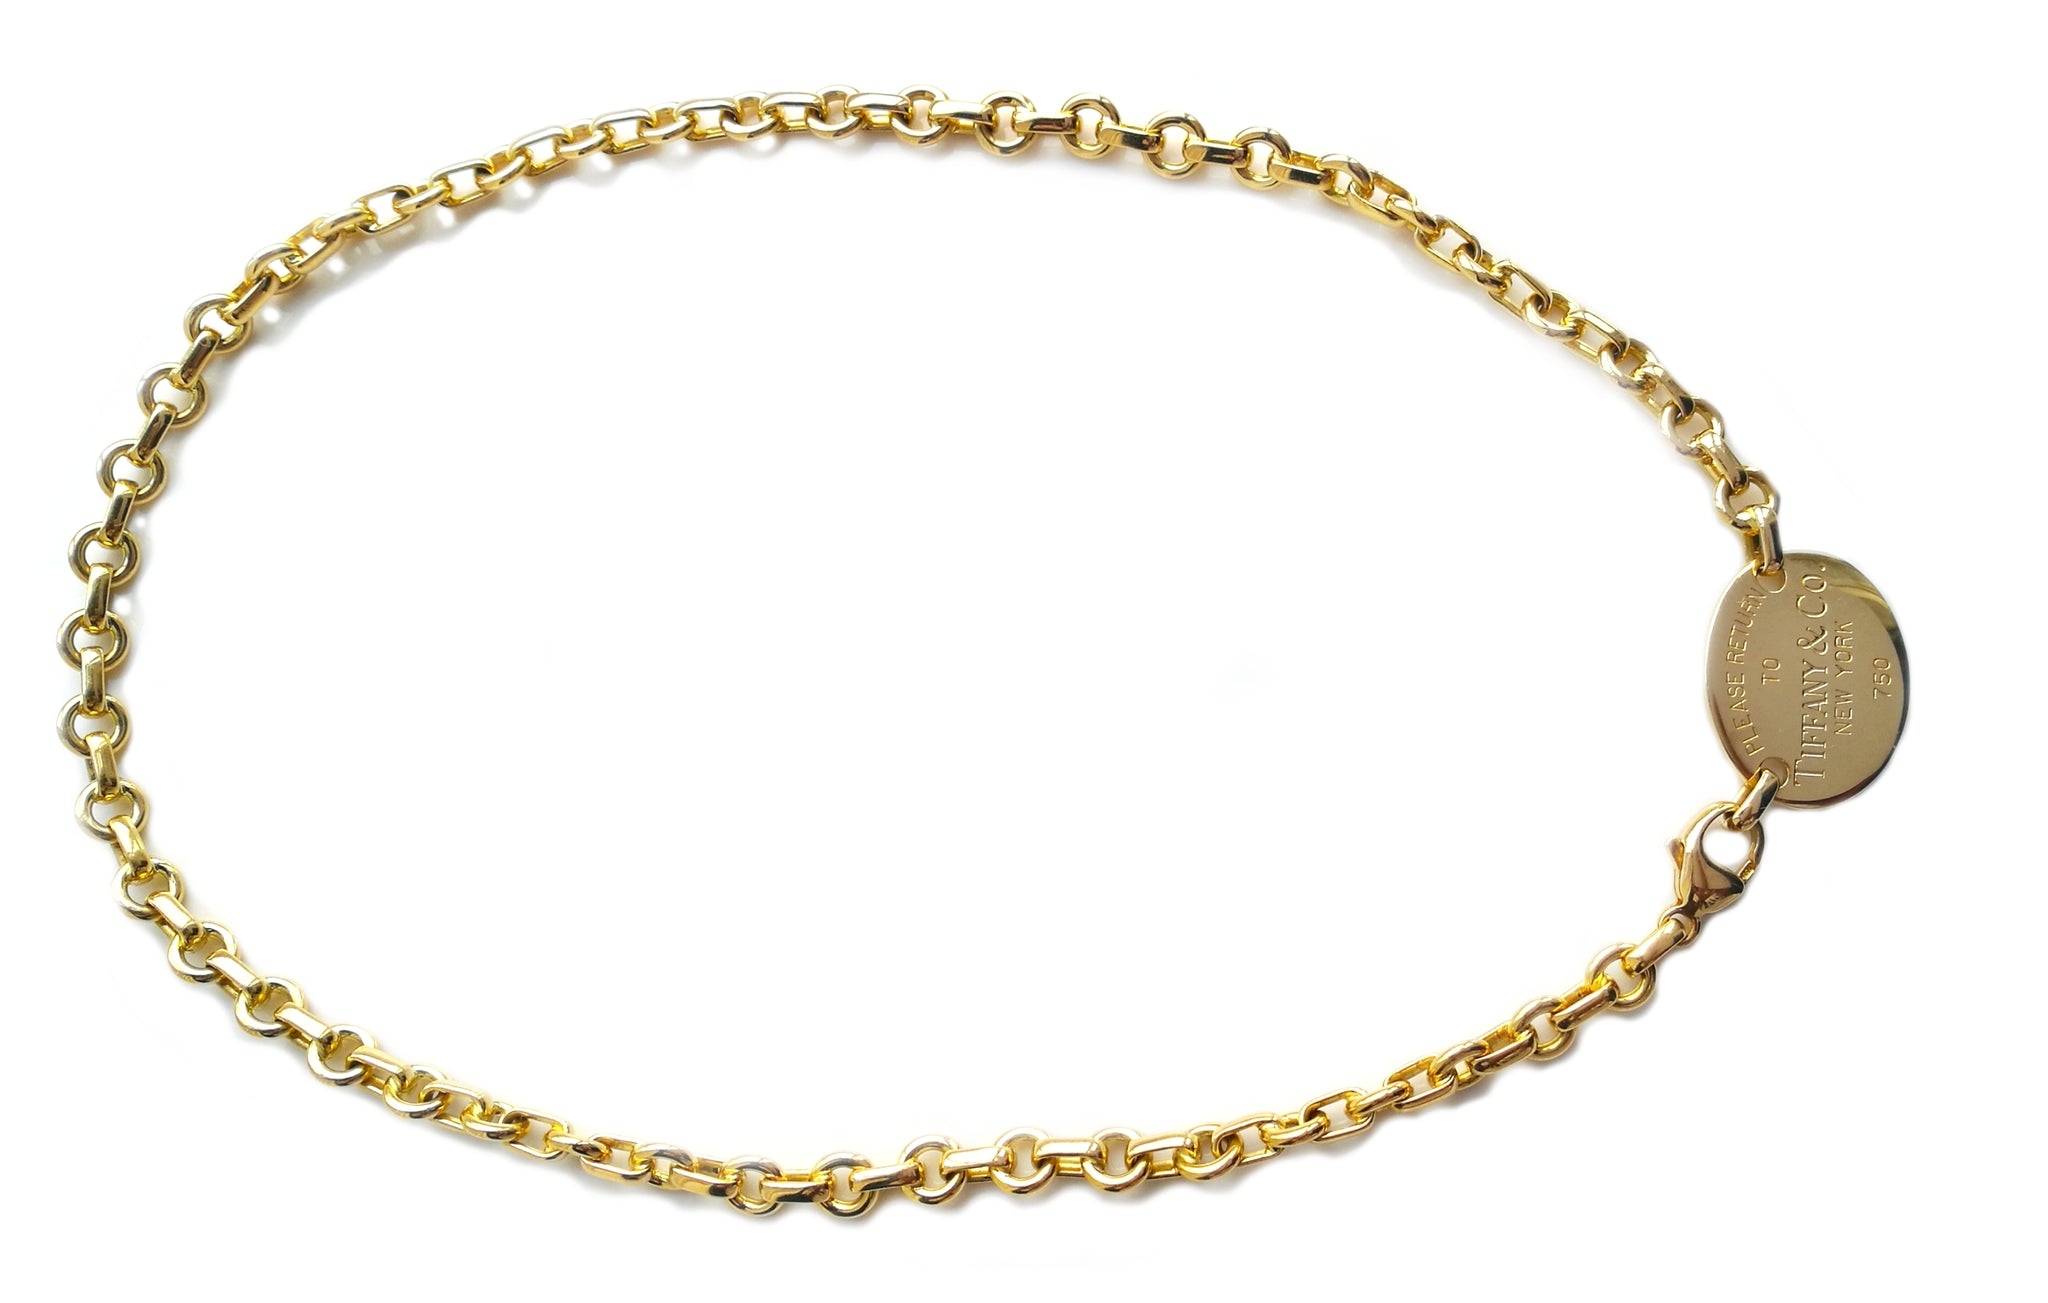 140816376 Tiffany & Co 18k Yellow Gold Oval Return To Choker Necklace 15.5in ...